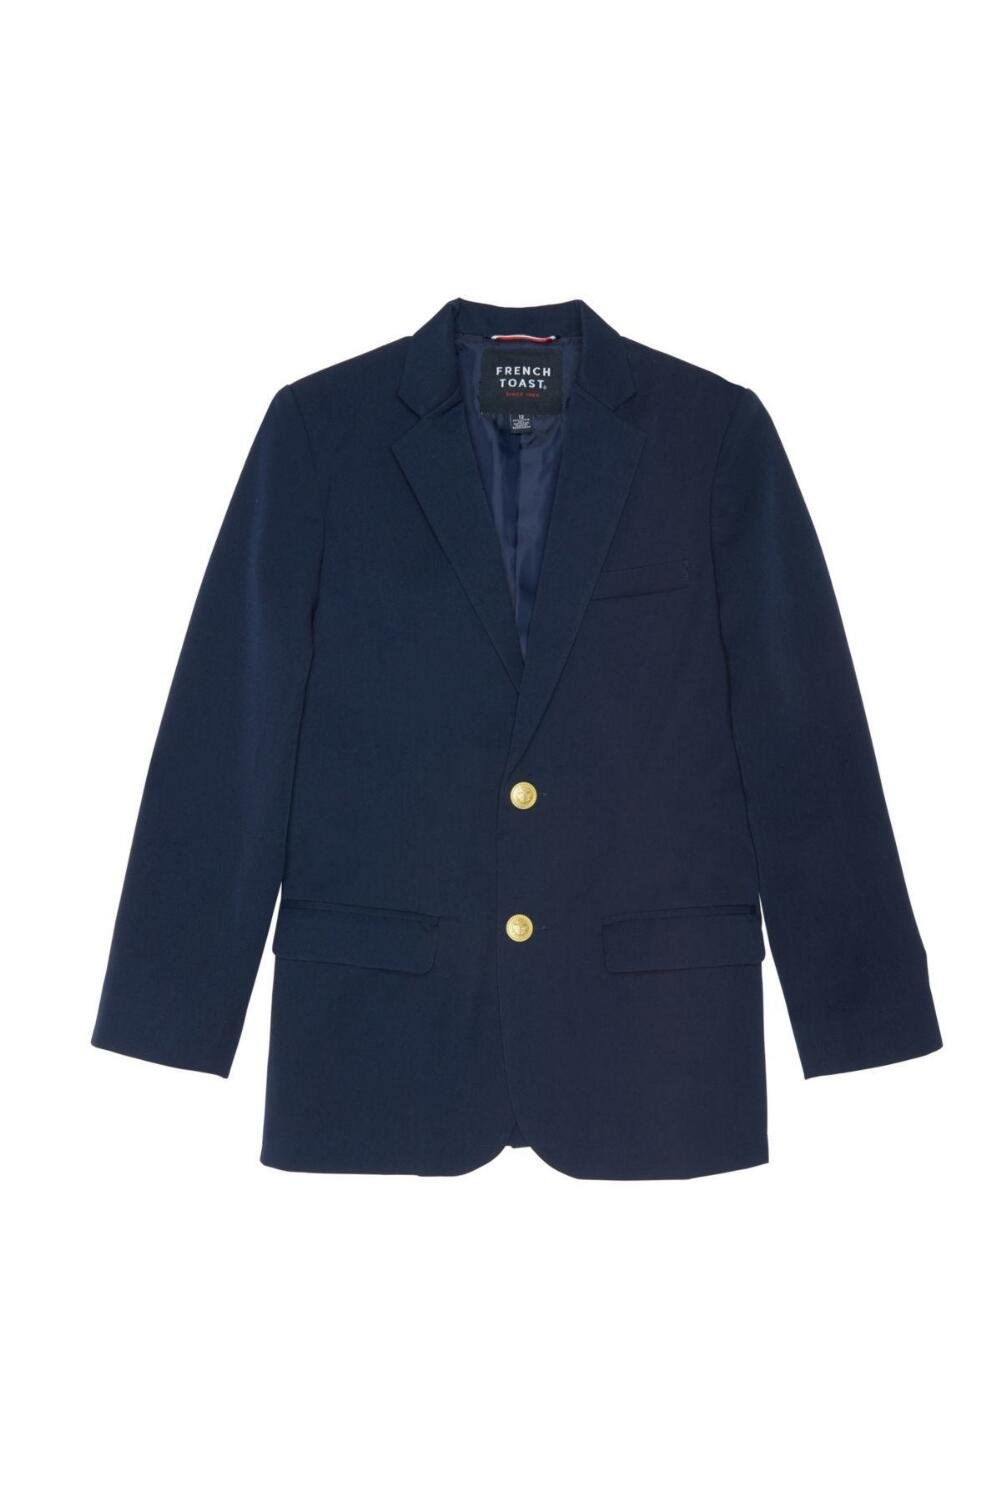 French Toast Big Boys' Classic School Blazer, Navy, 8